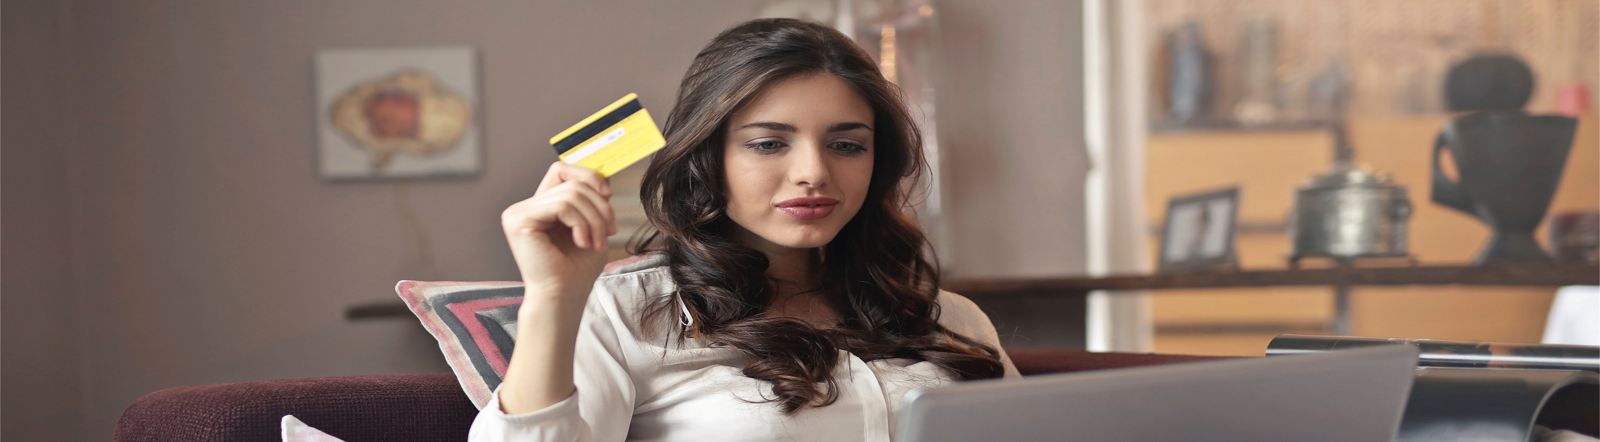 Girl with credit card shopping online.